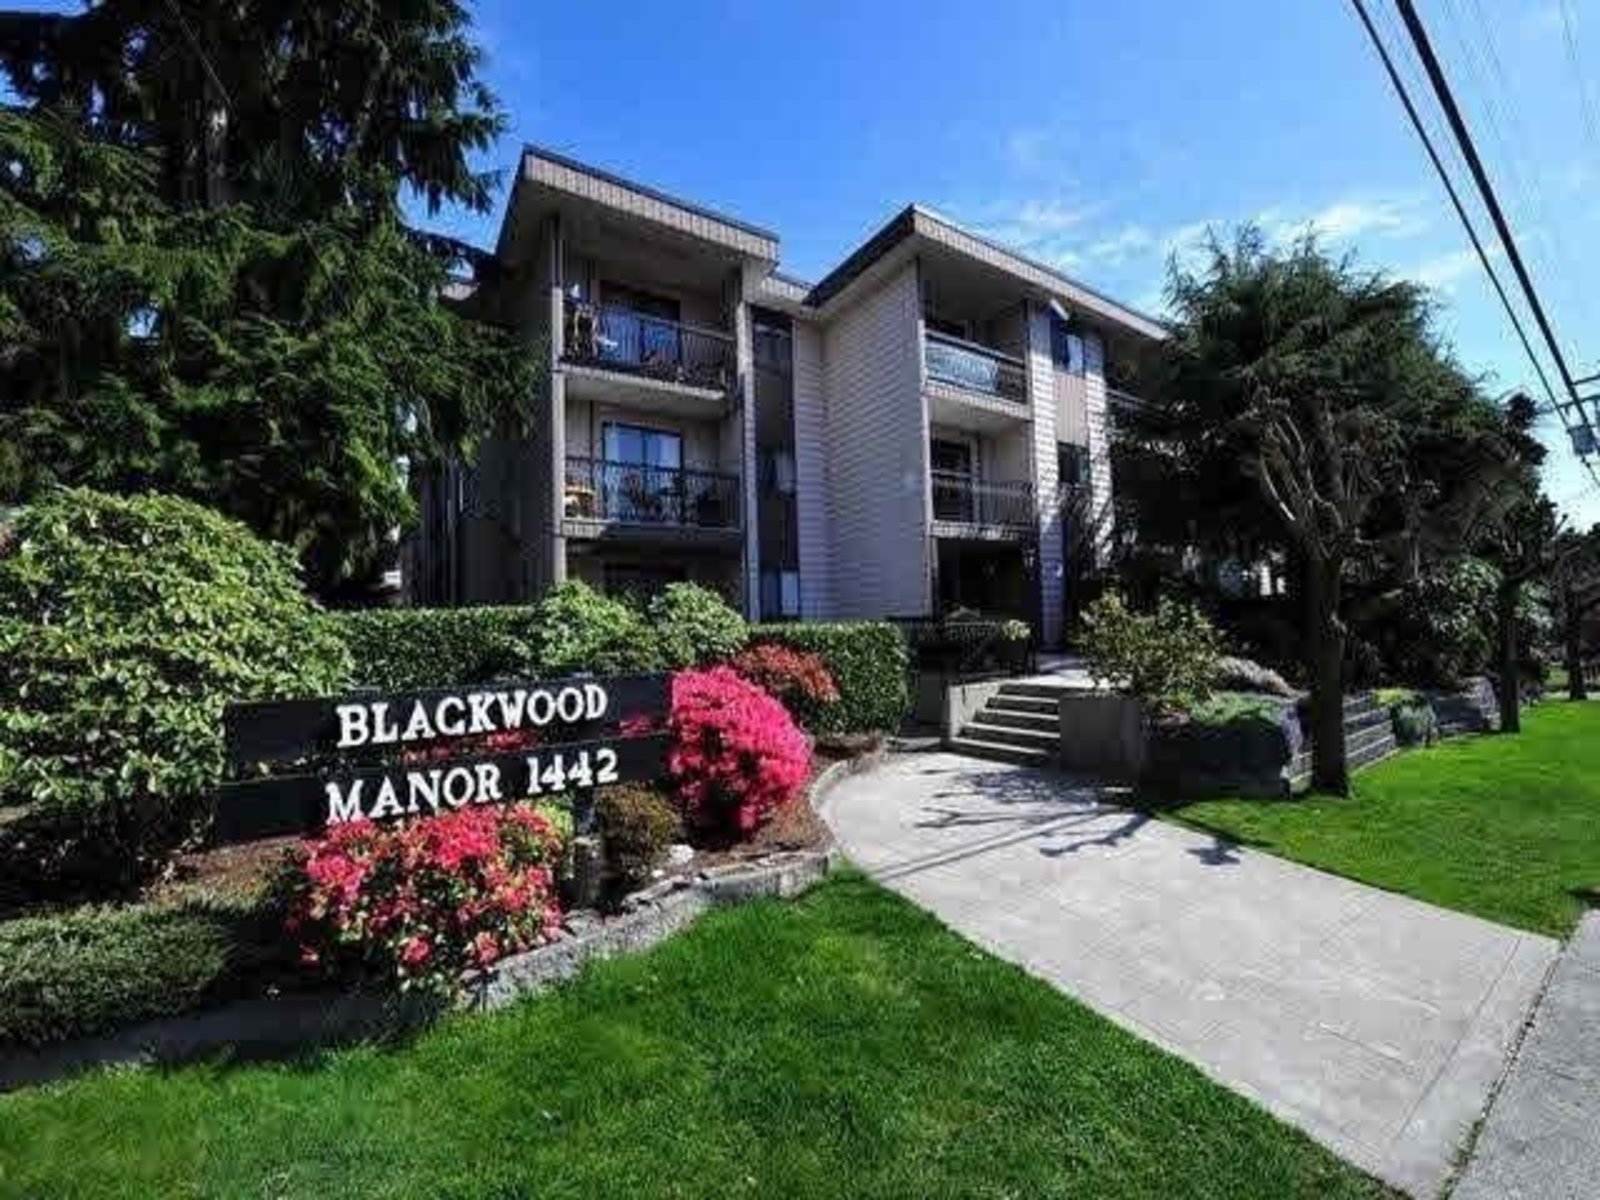 Sold 115 1442 Blackwood Street White Rock On February 2020 View Sold Price Bccondosandhomes